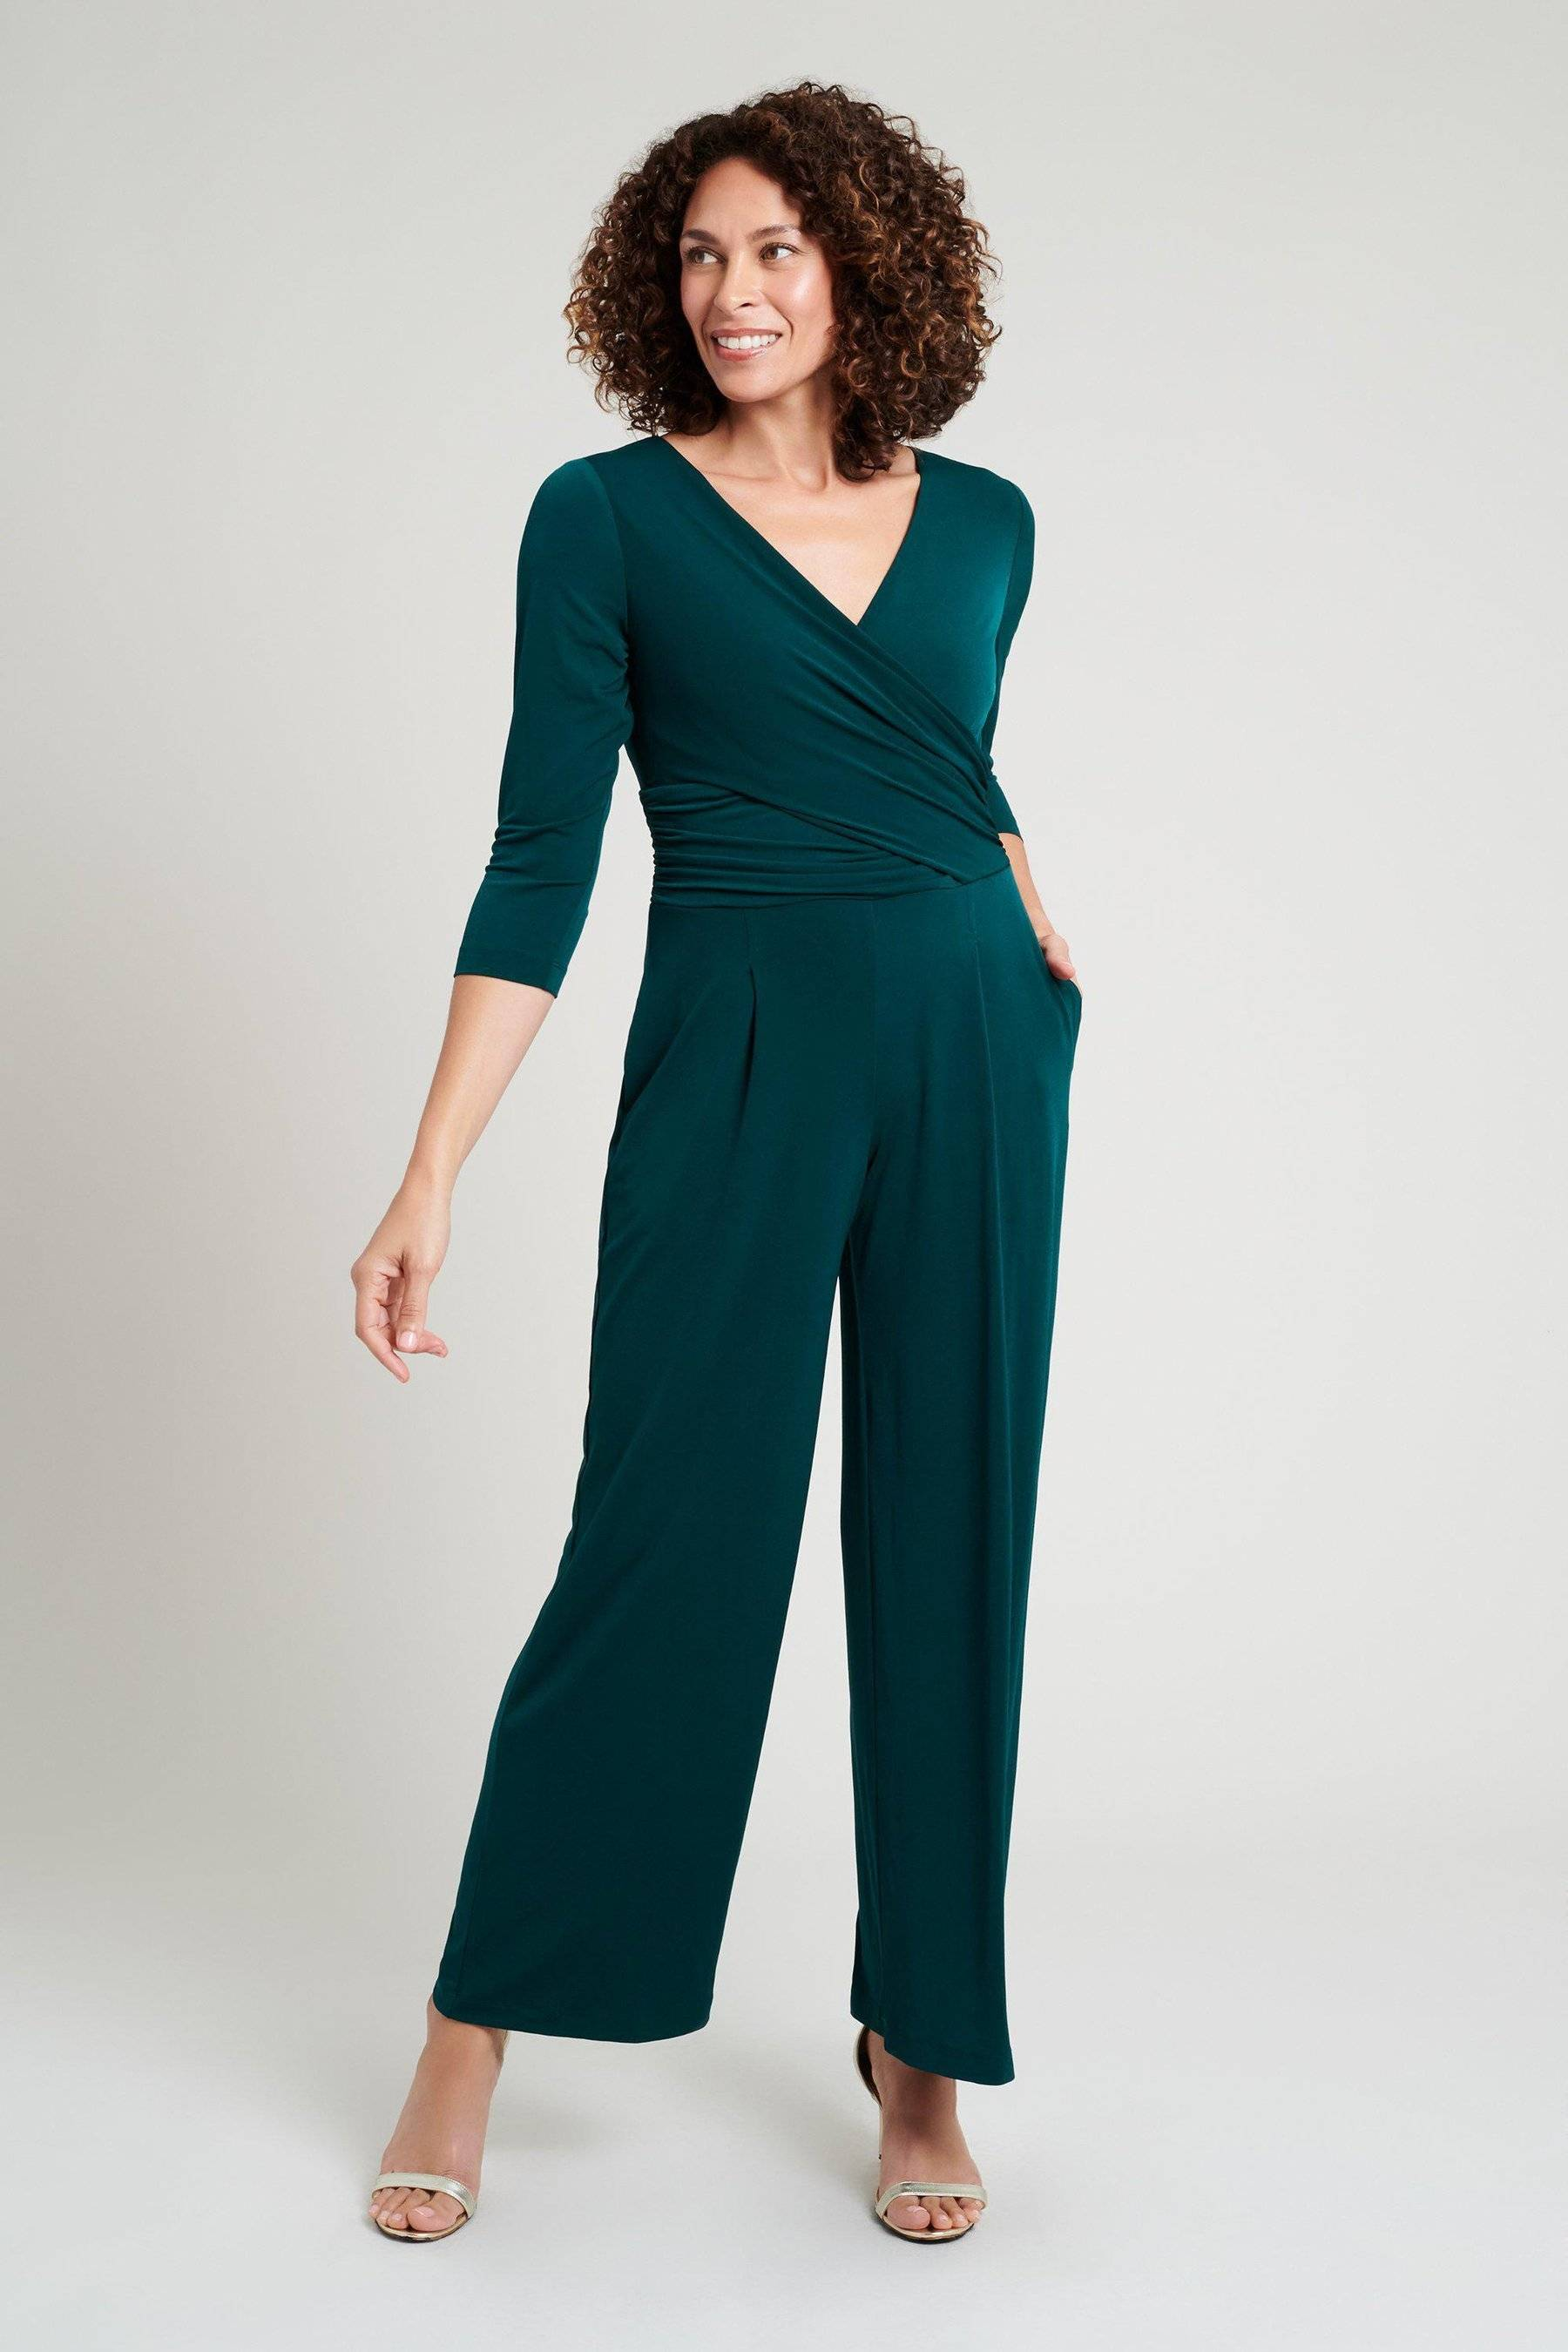 woman posing in emerald green three-quarter sleeve connected apparel jumpsuit